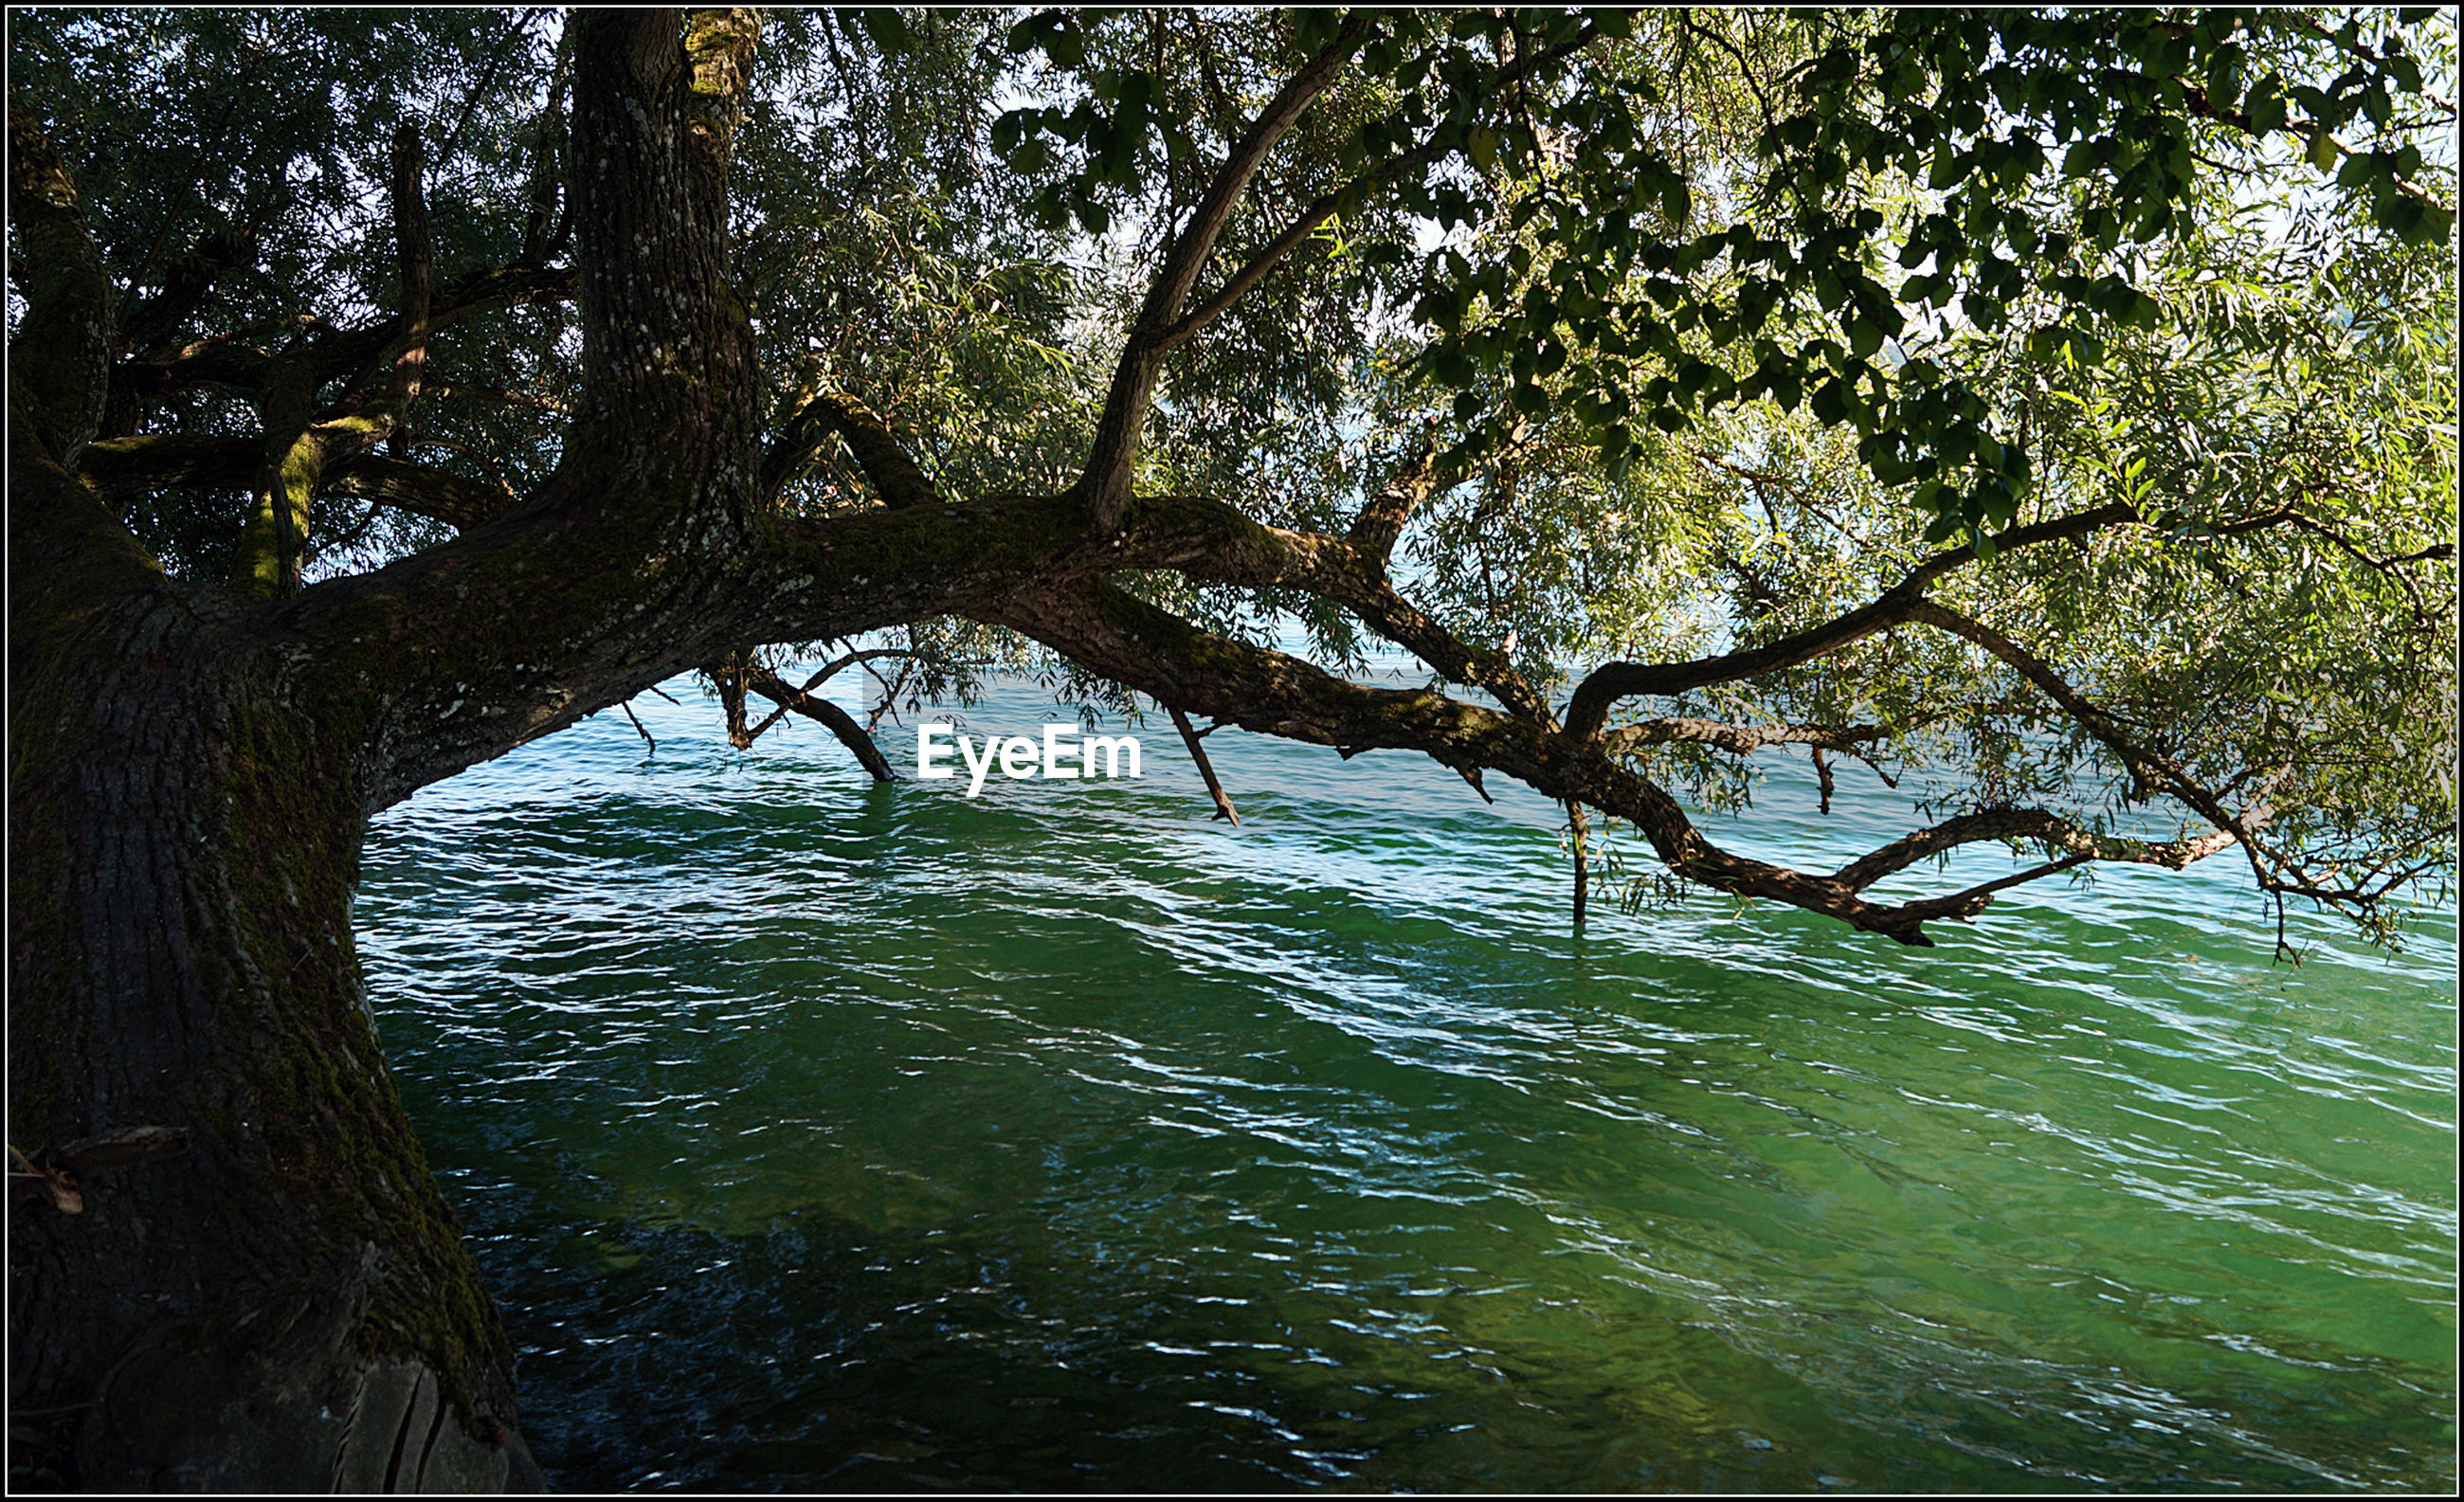 water, tree, branch, growth, tranquility, nature, tranquil scene, tree trunk, scenics, beauty in nature, green color, day, green, outdoors, growing, sea, non-urban scene, vacations, remote, no people, solitude, tourism, waterfront